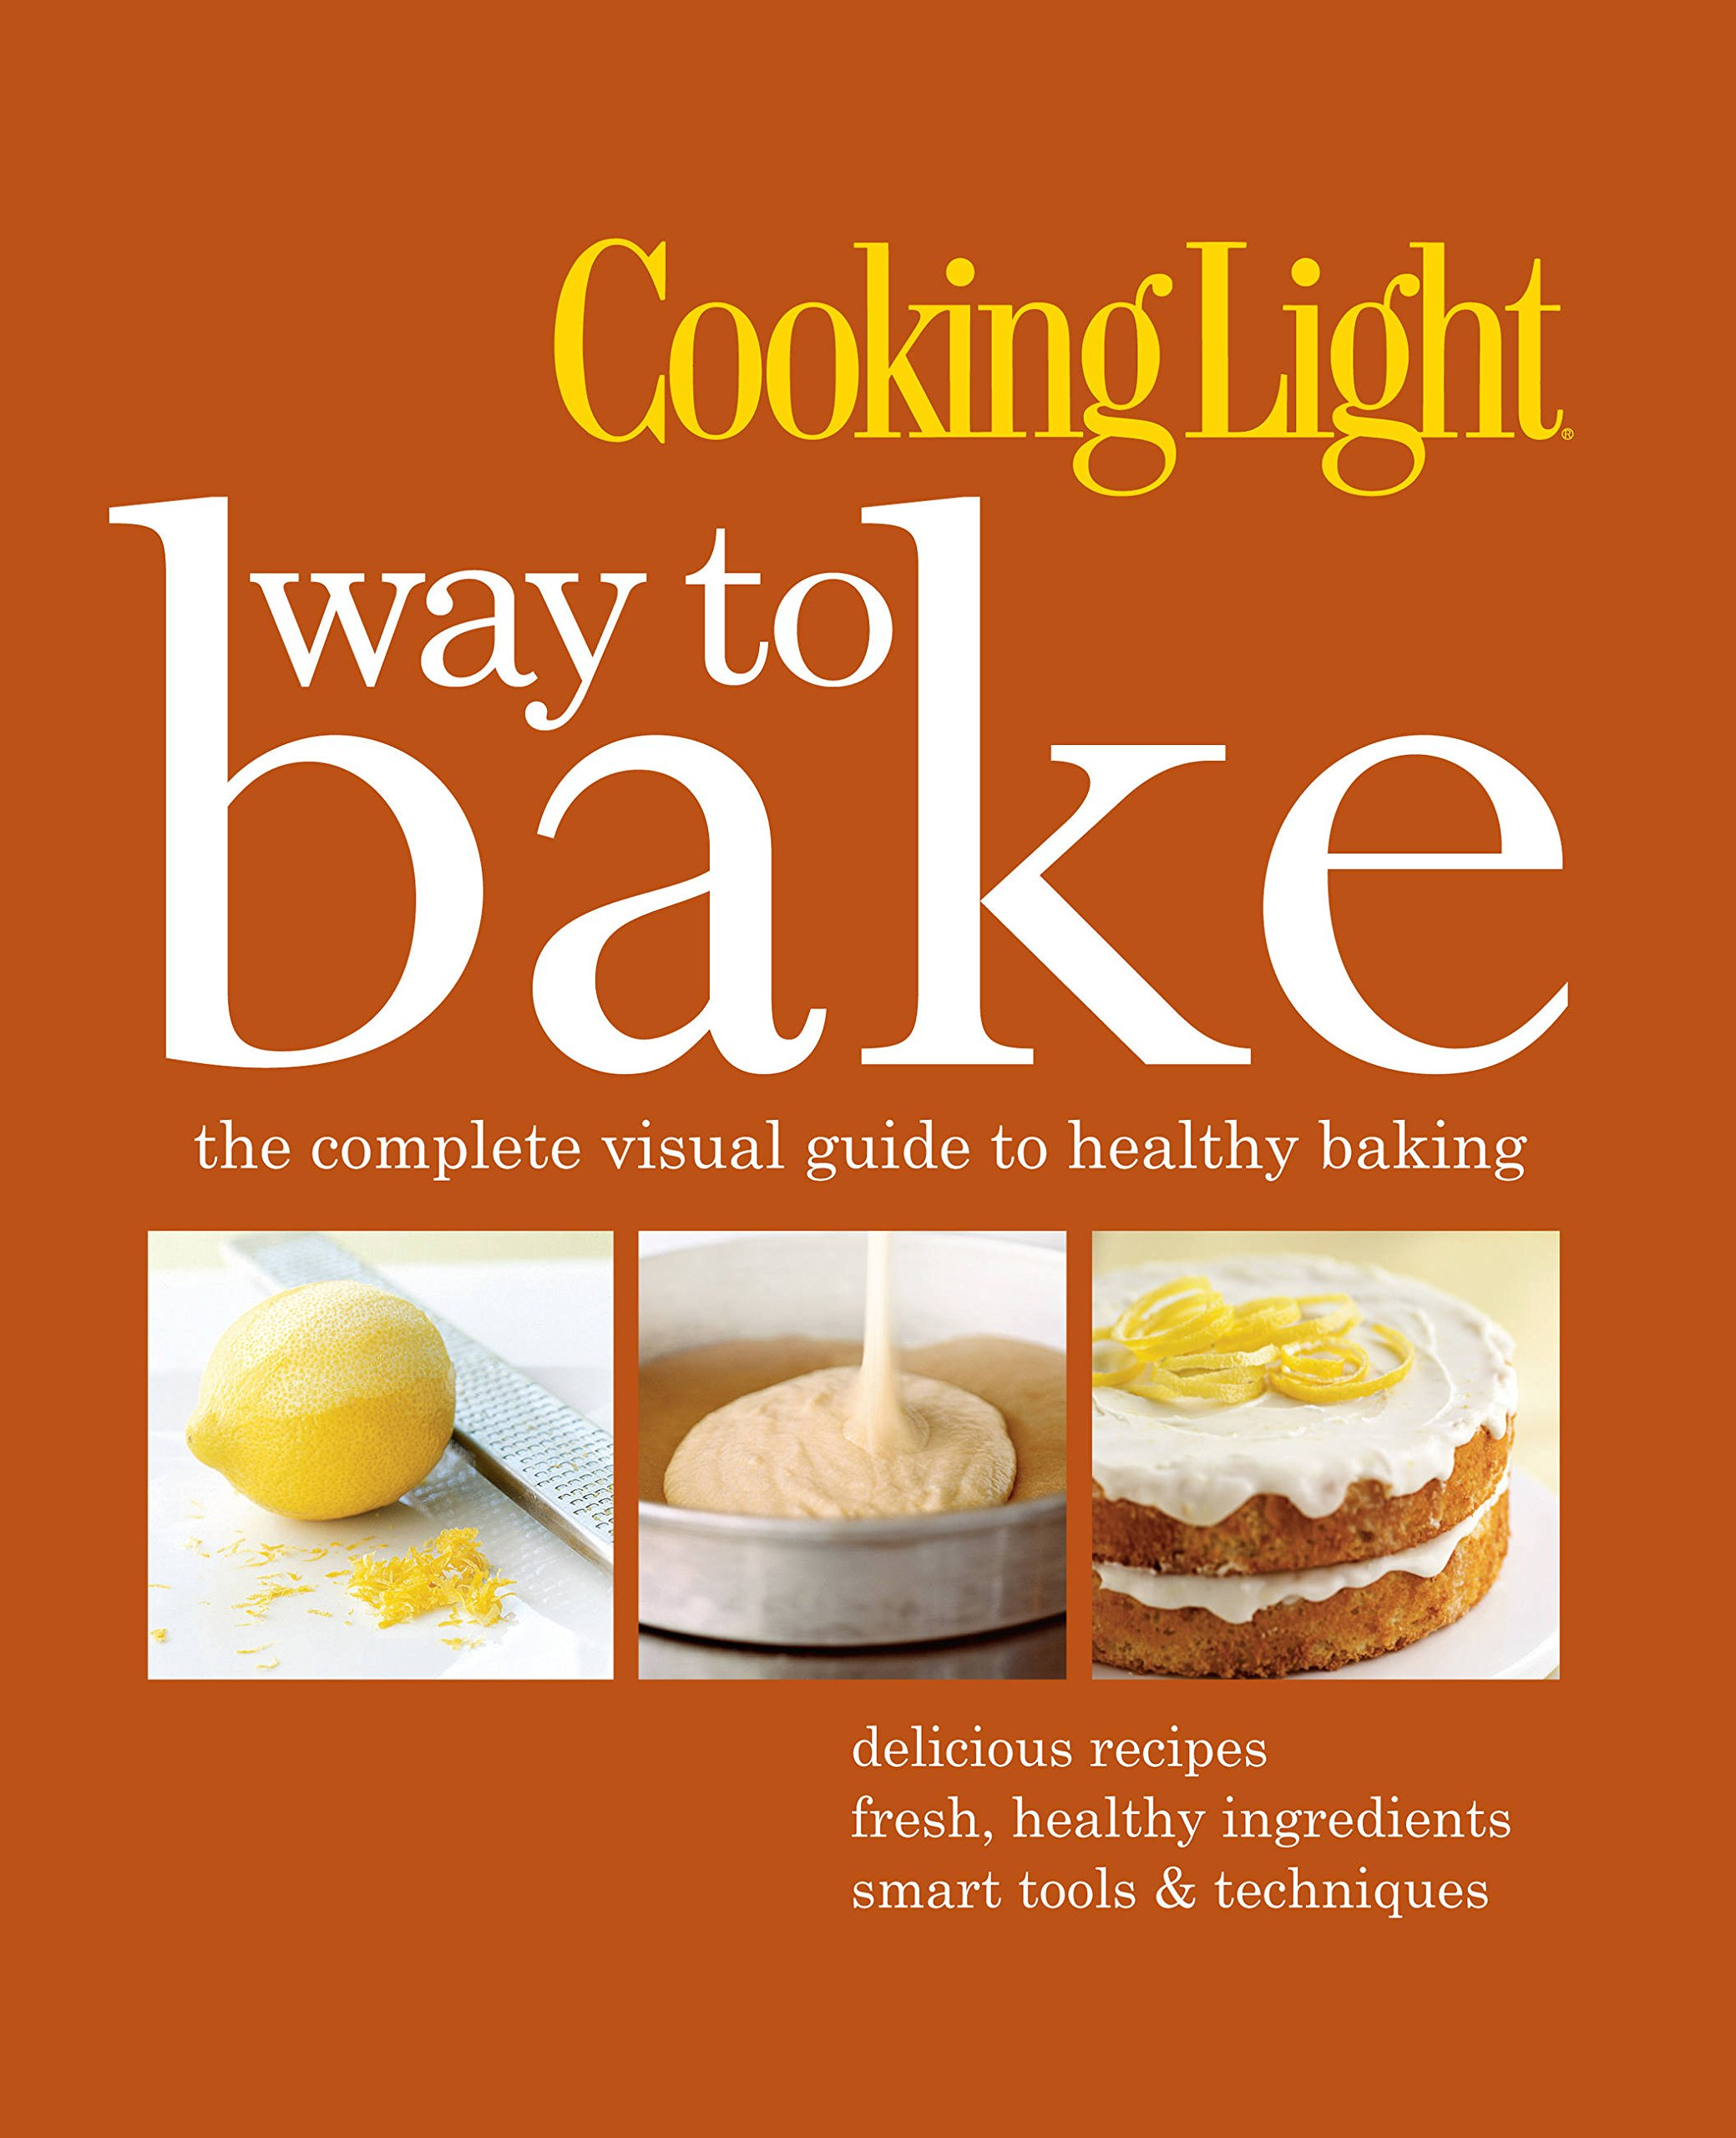 Download Cooking Light Way to Bake: The Complete Visual Guide to Healthy Baking PDF